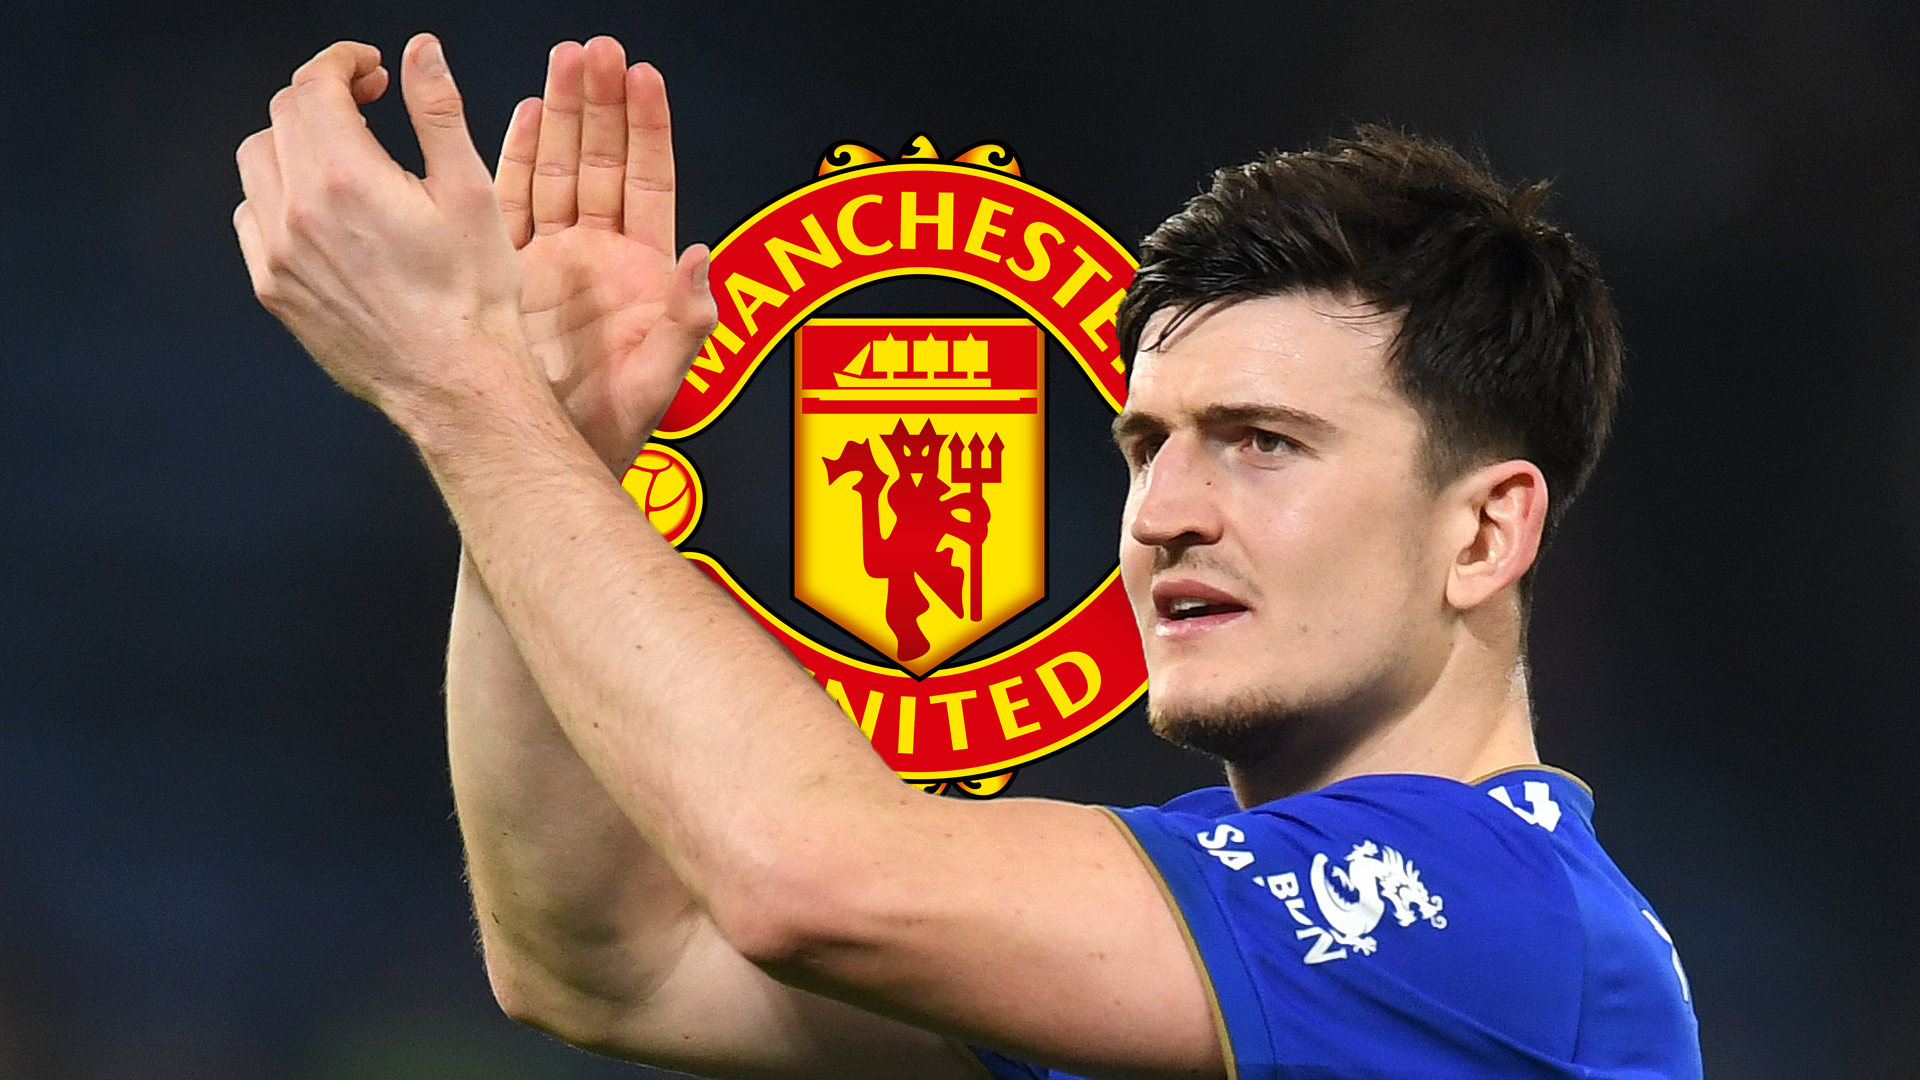 Harry Maguire, Man Utd logo